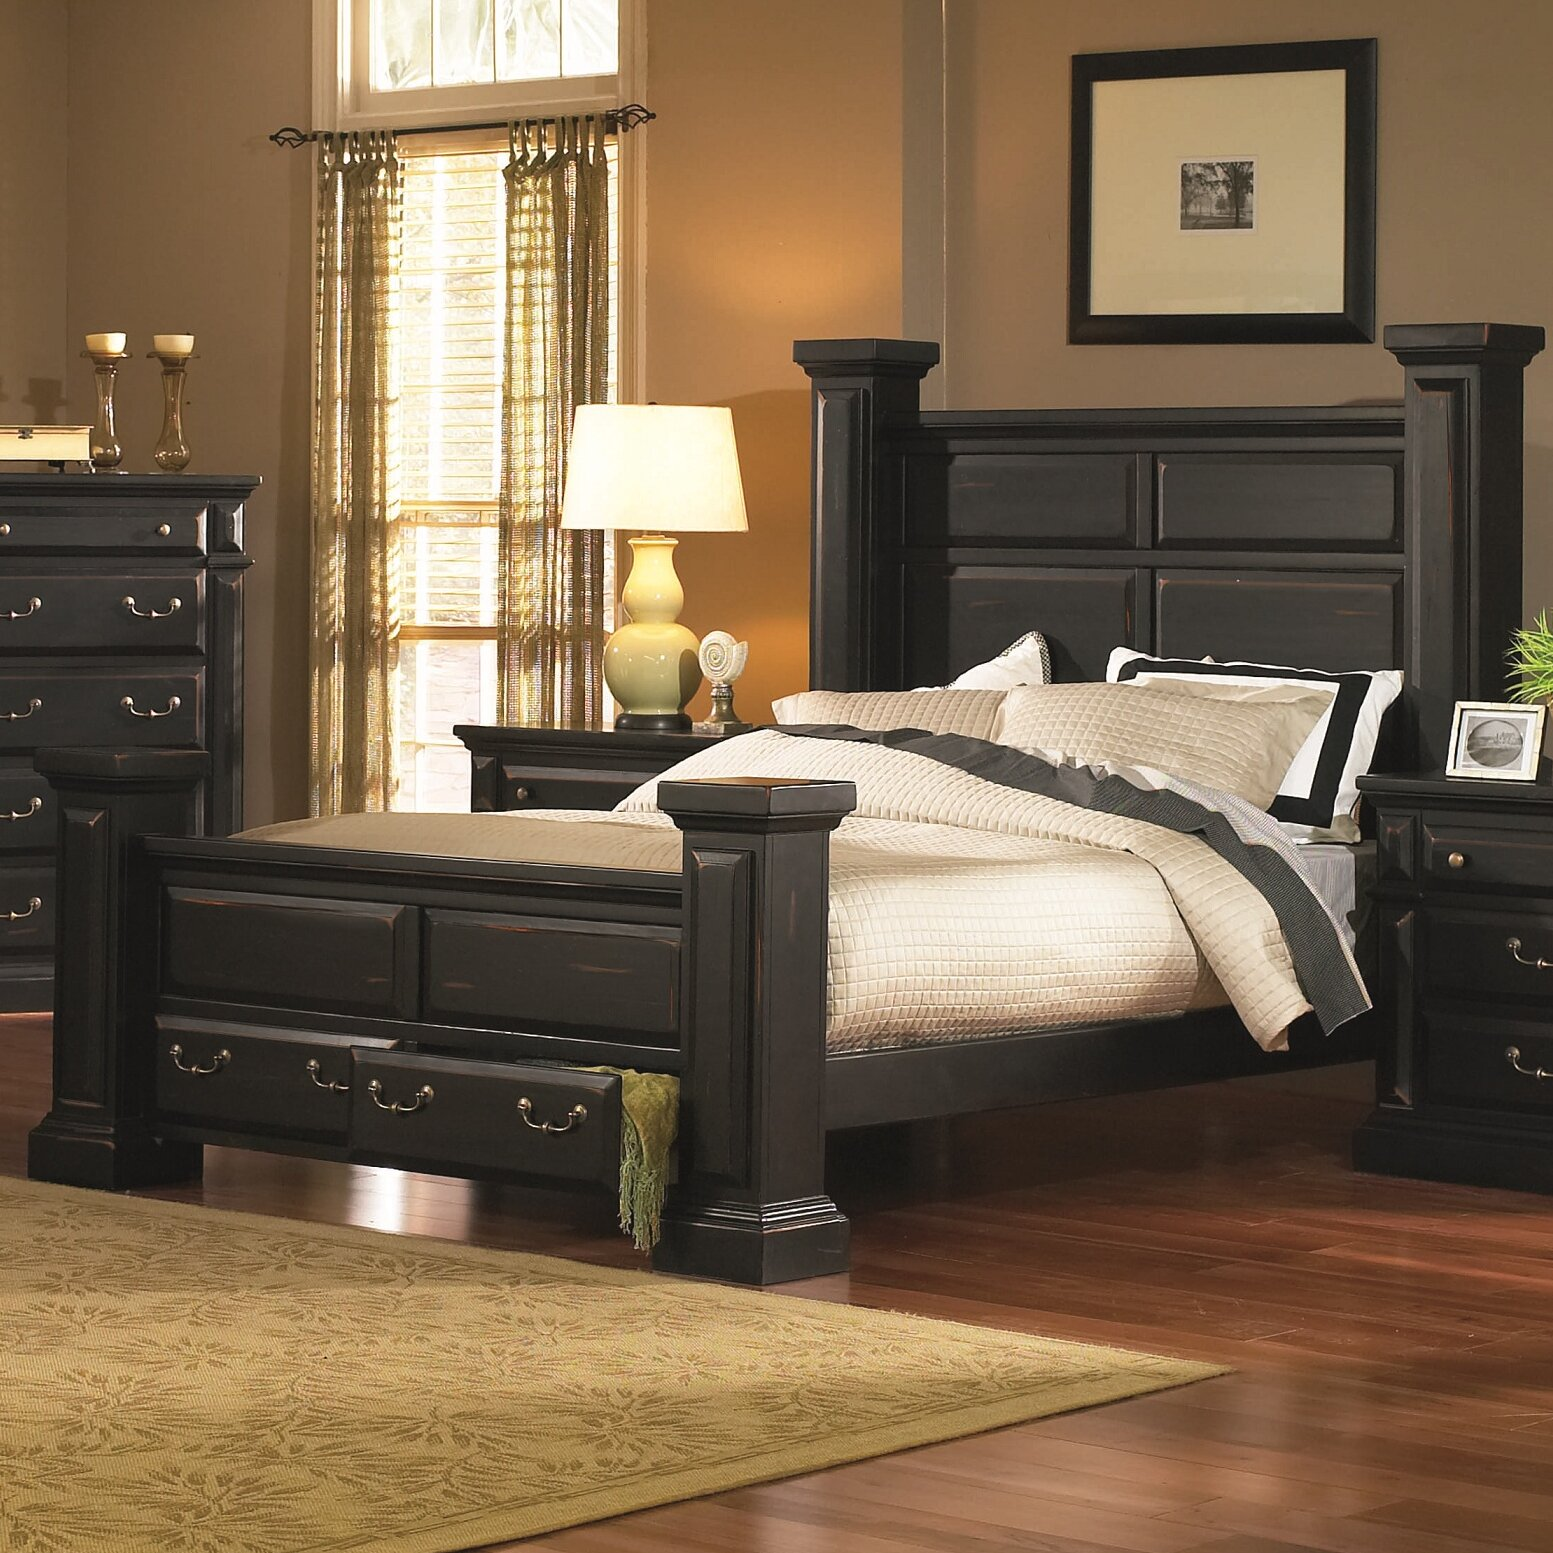 Bedroom Furniture Sets Online